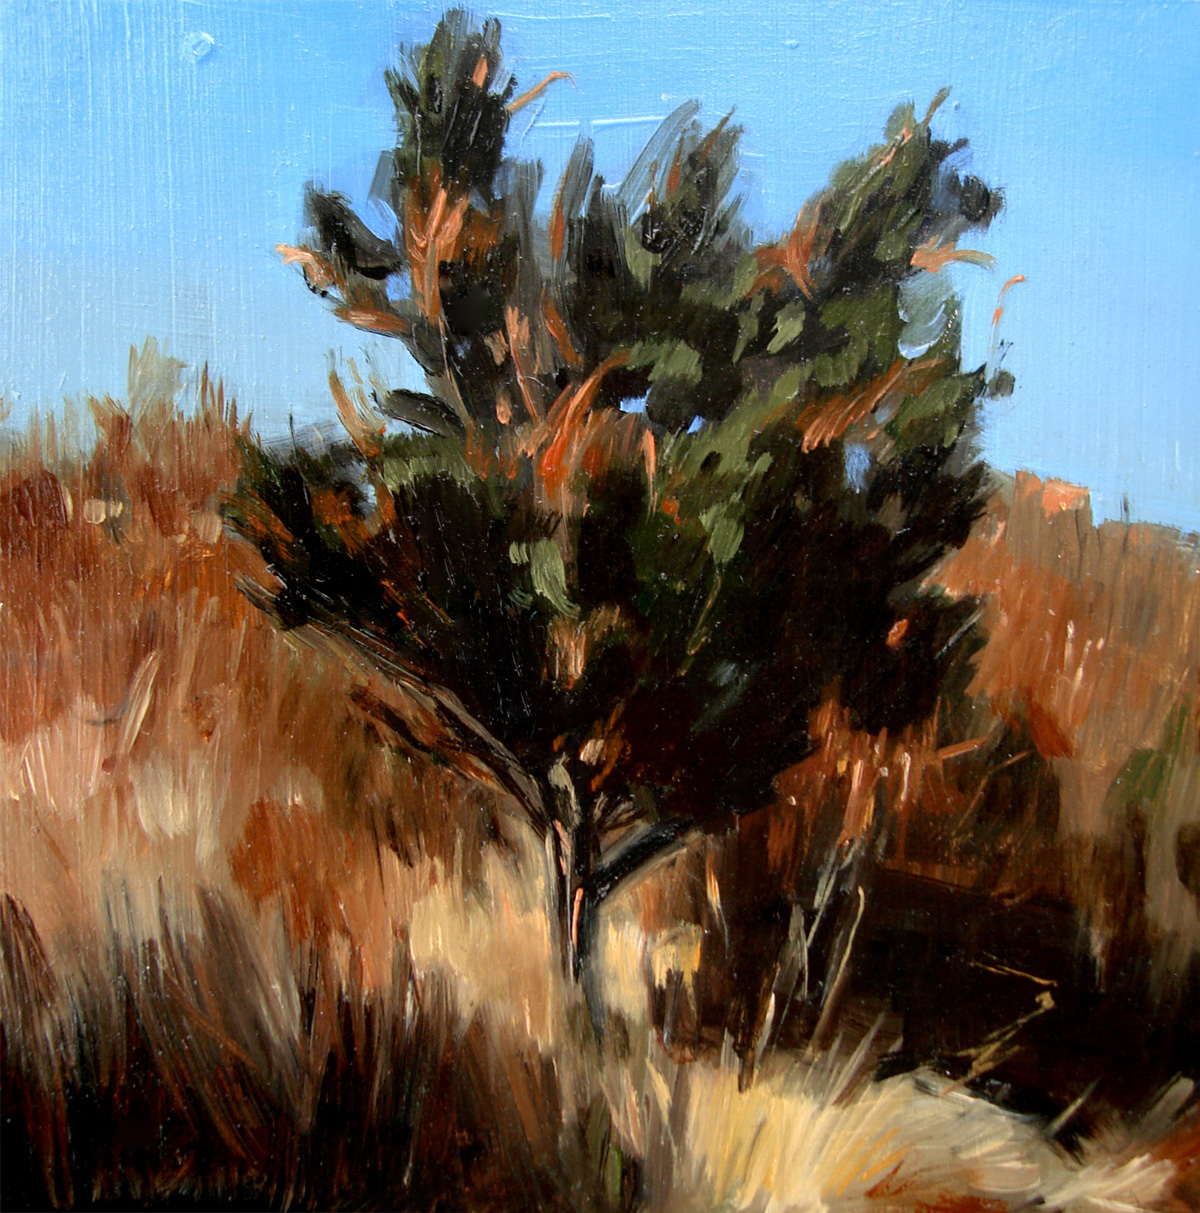 """Ocean Tree at Clay Cliffs of Aquinnah, Martha's Vineyard"" original fine art by Michael William"